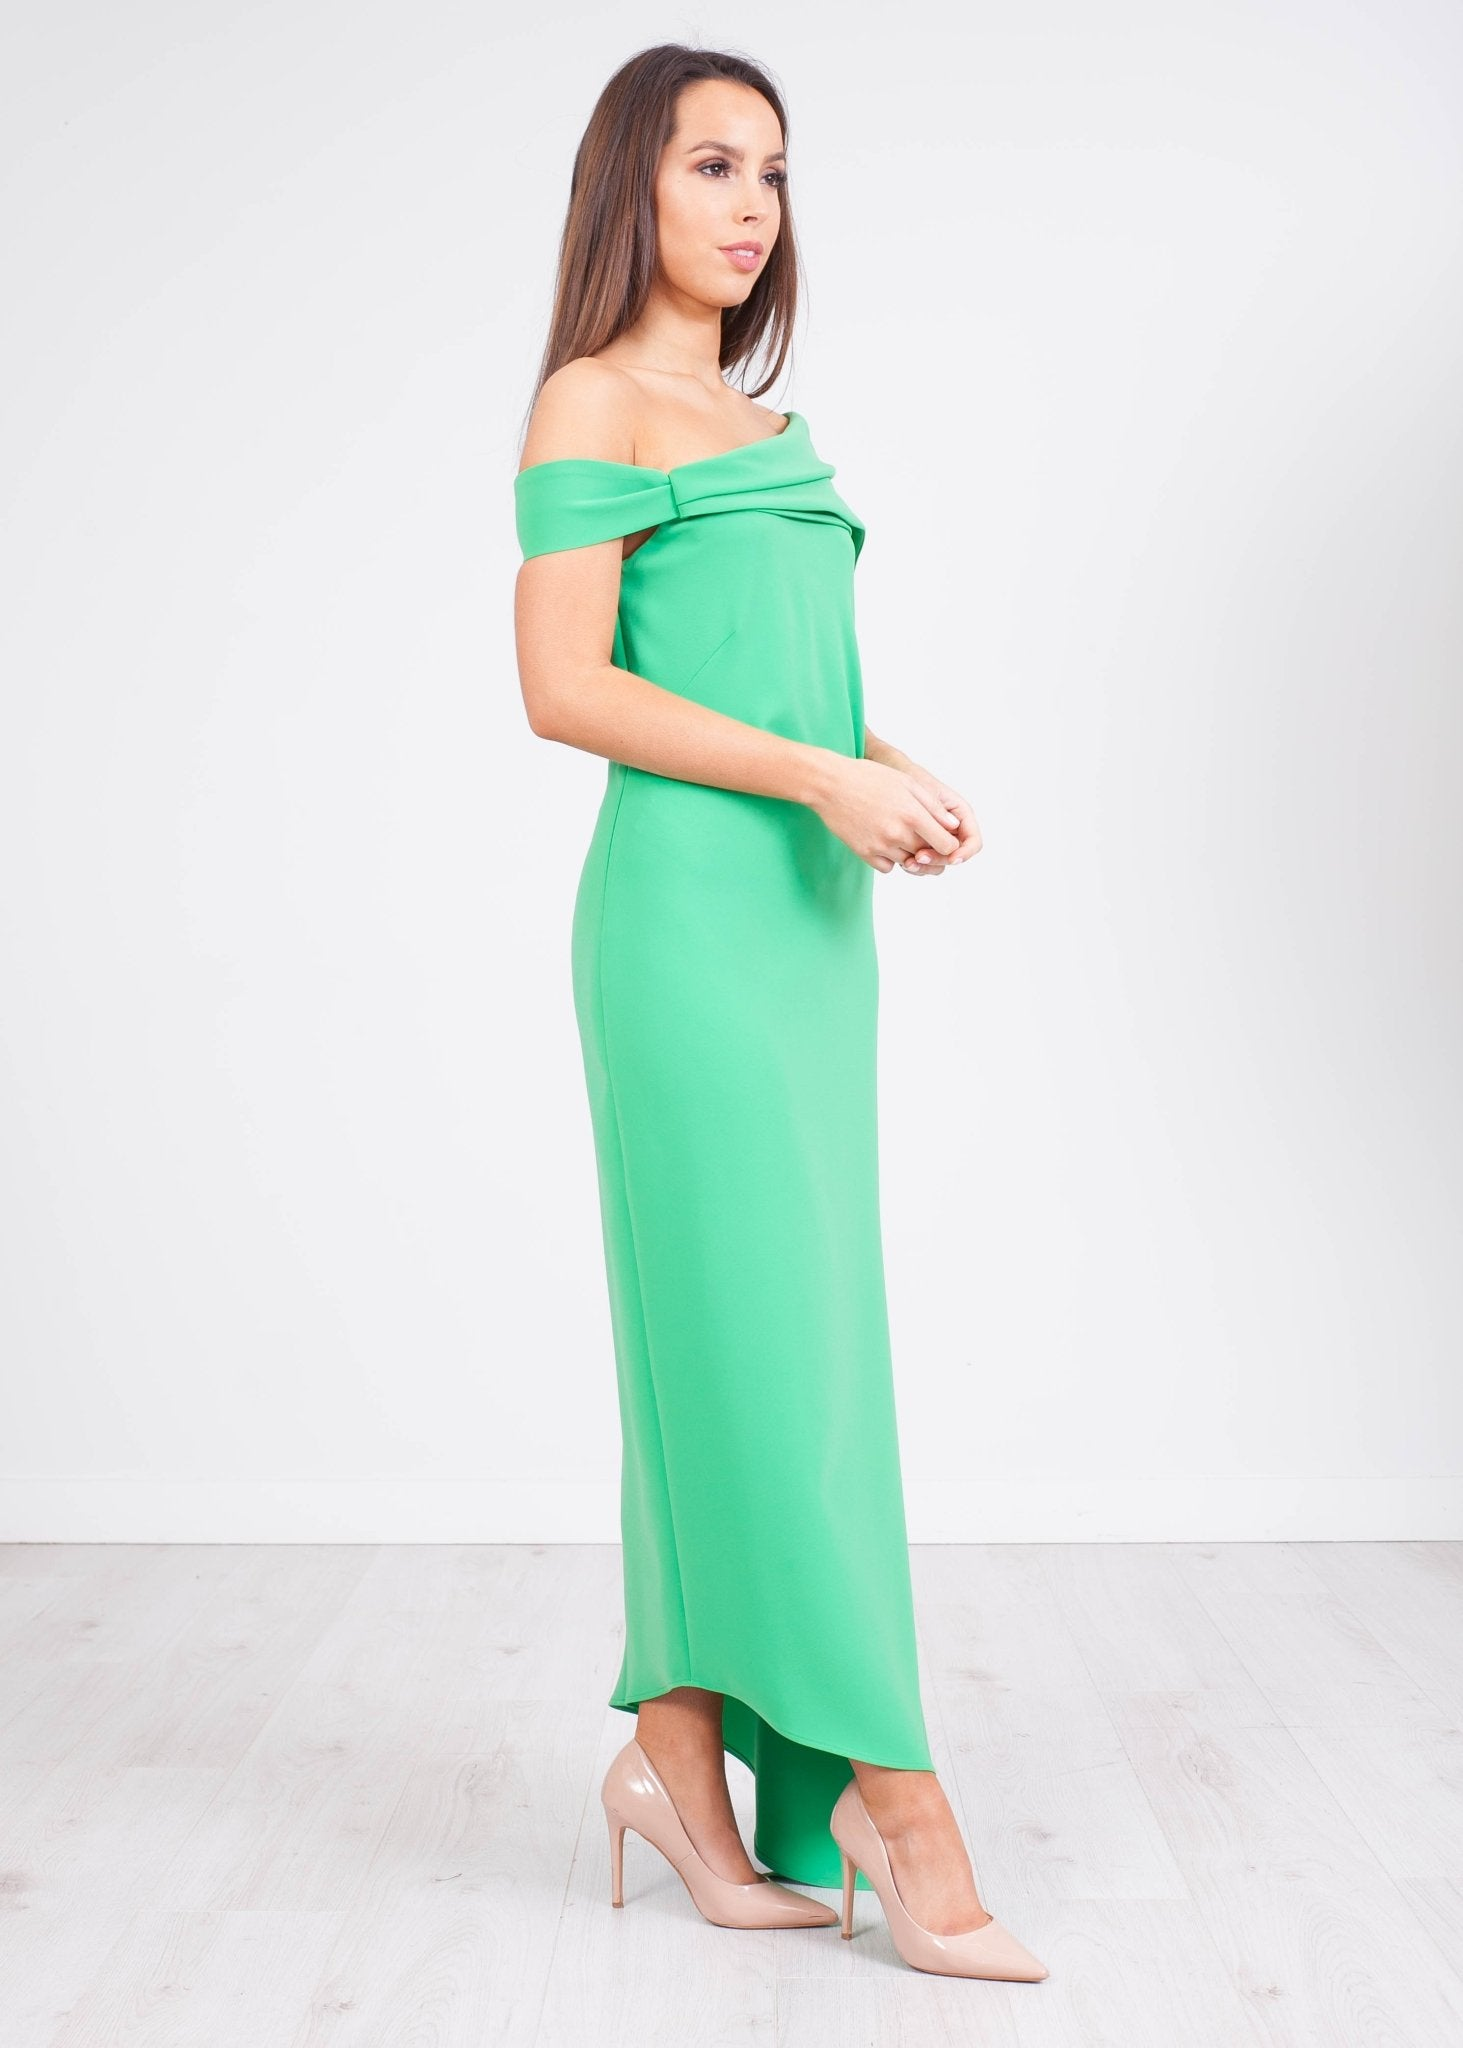 Carla Green Bianca Dress - The Walk in Wardrobe